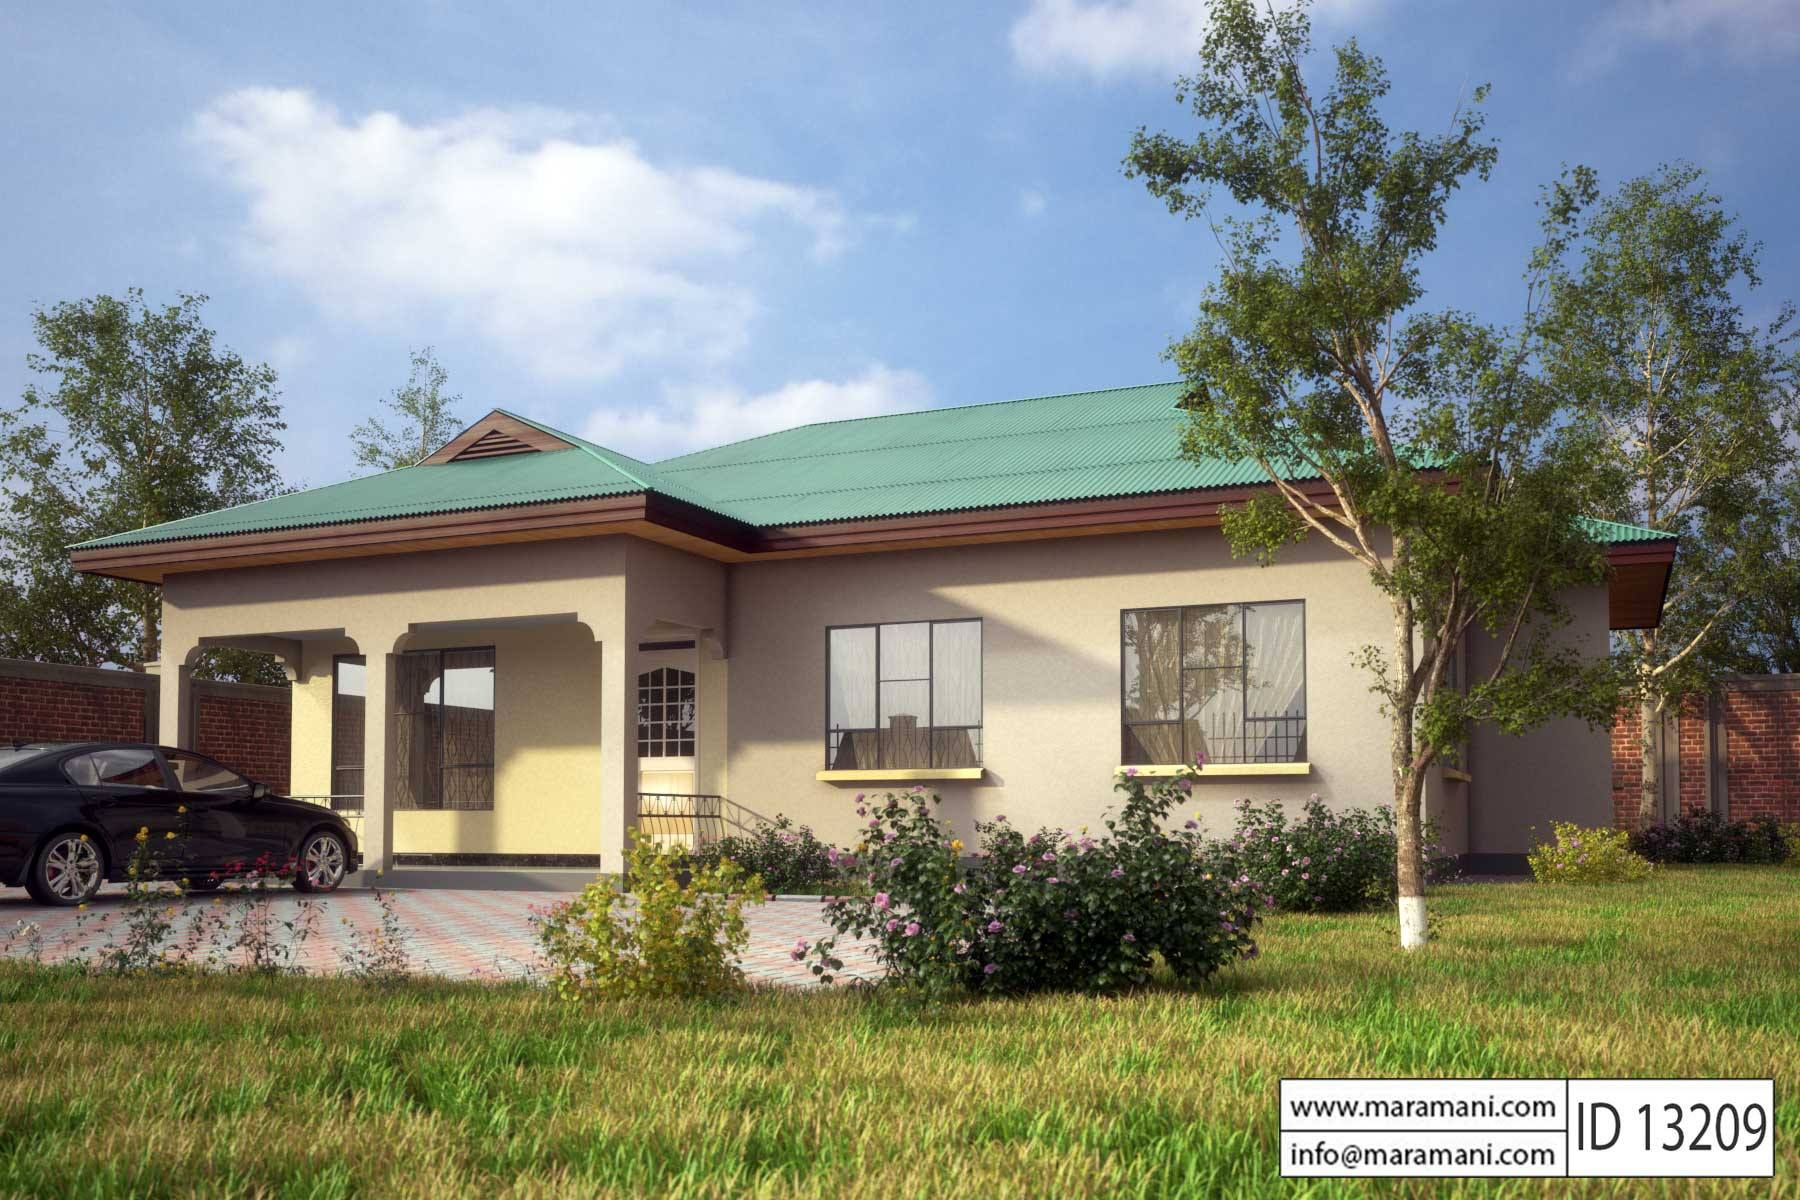 3 bedroom house plan id 13209 house plans by maramani for Modern house plans and designs in kenya